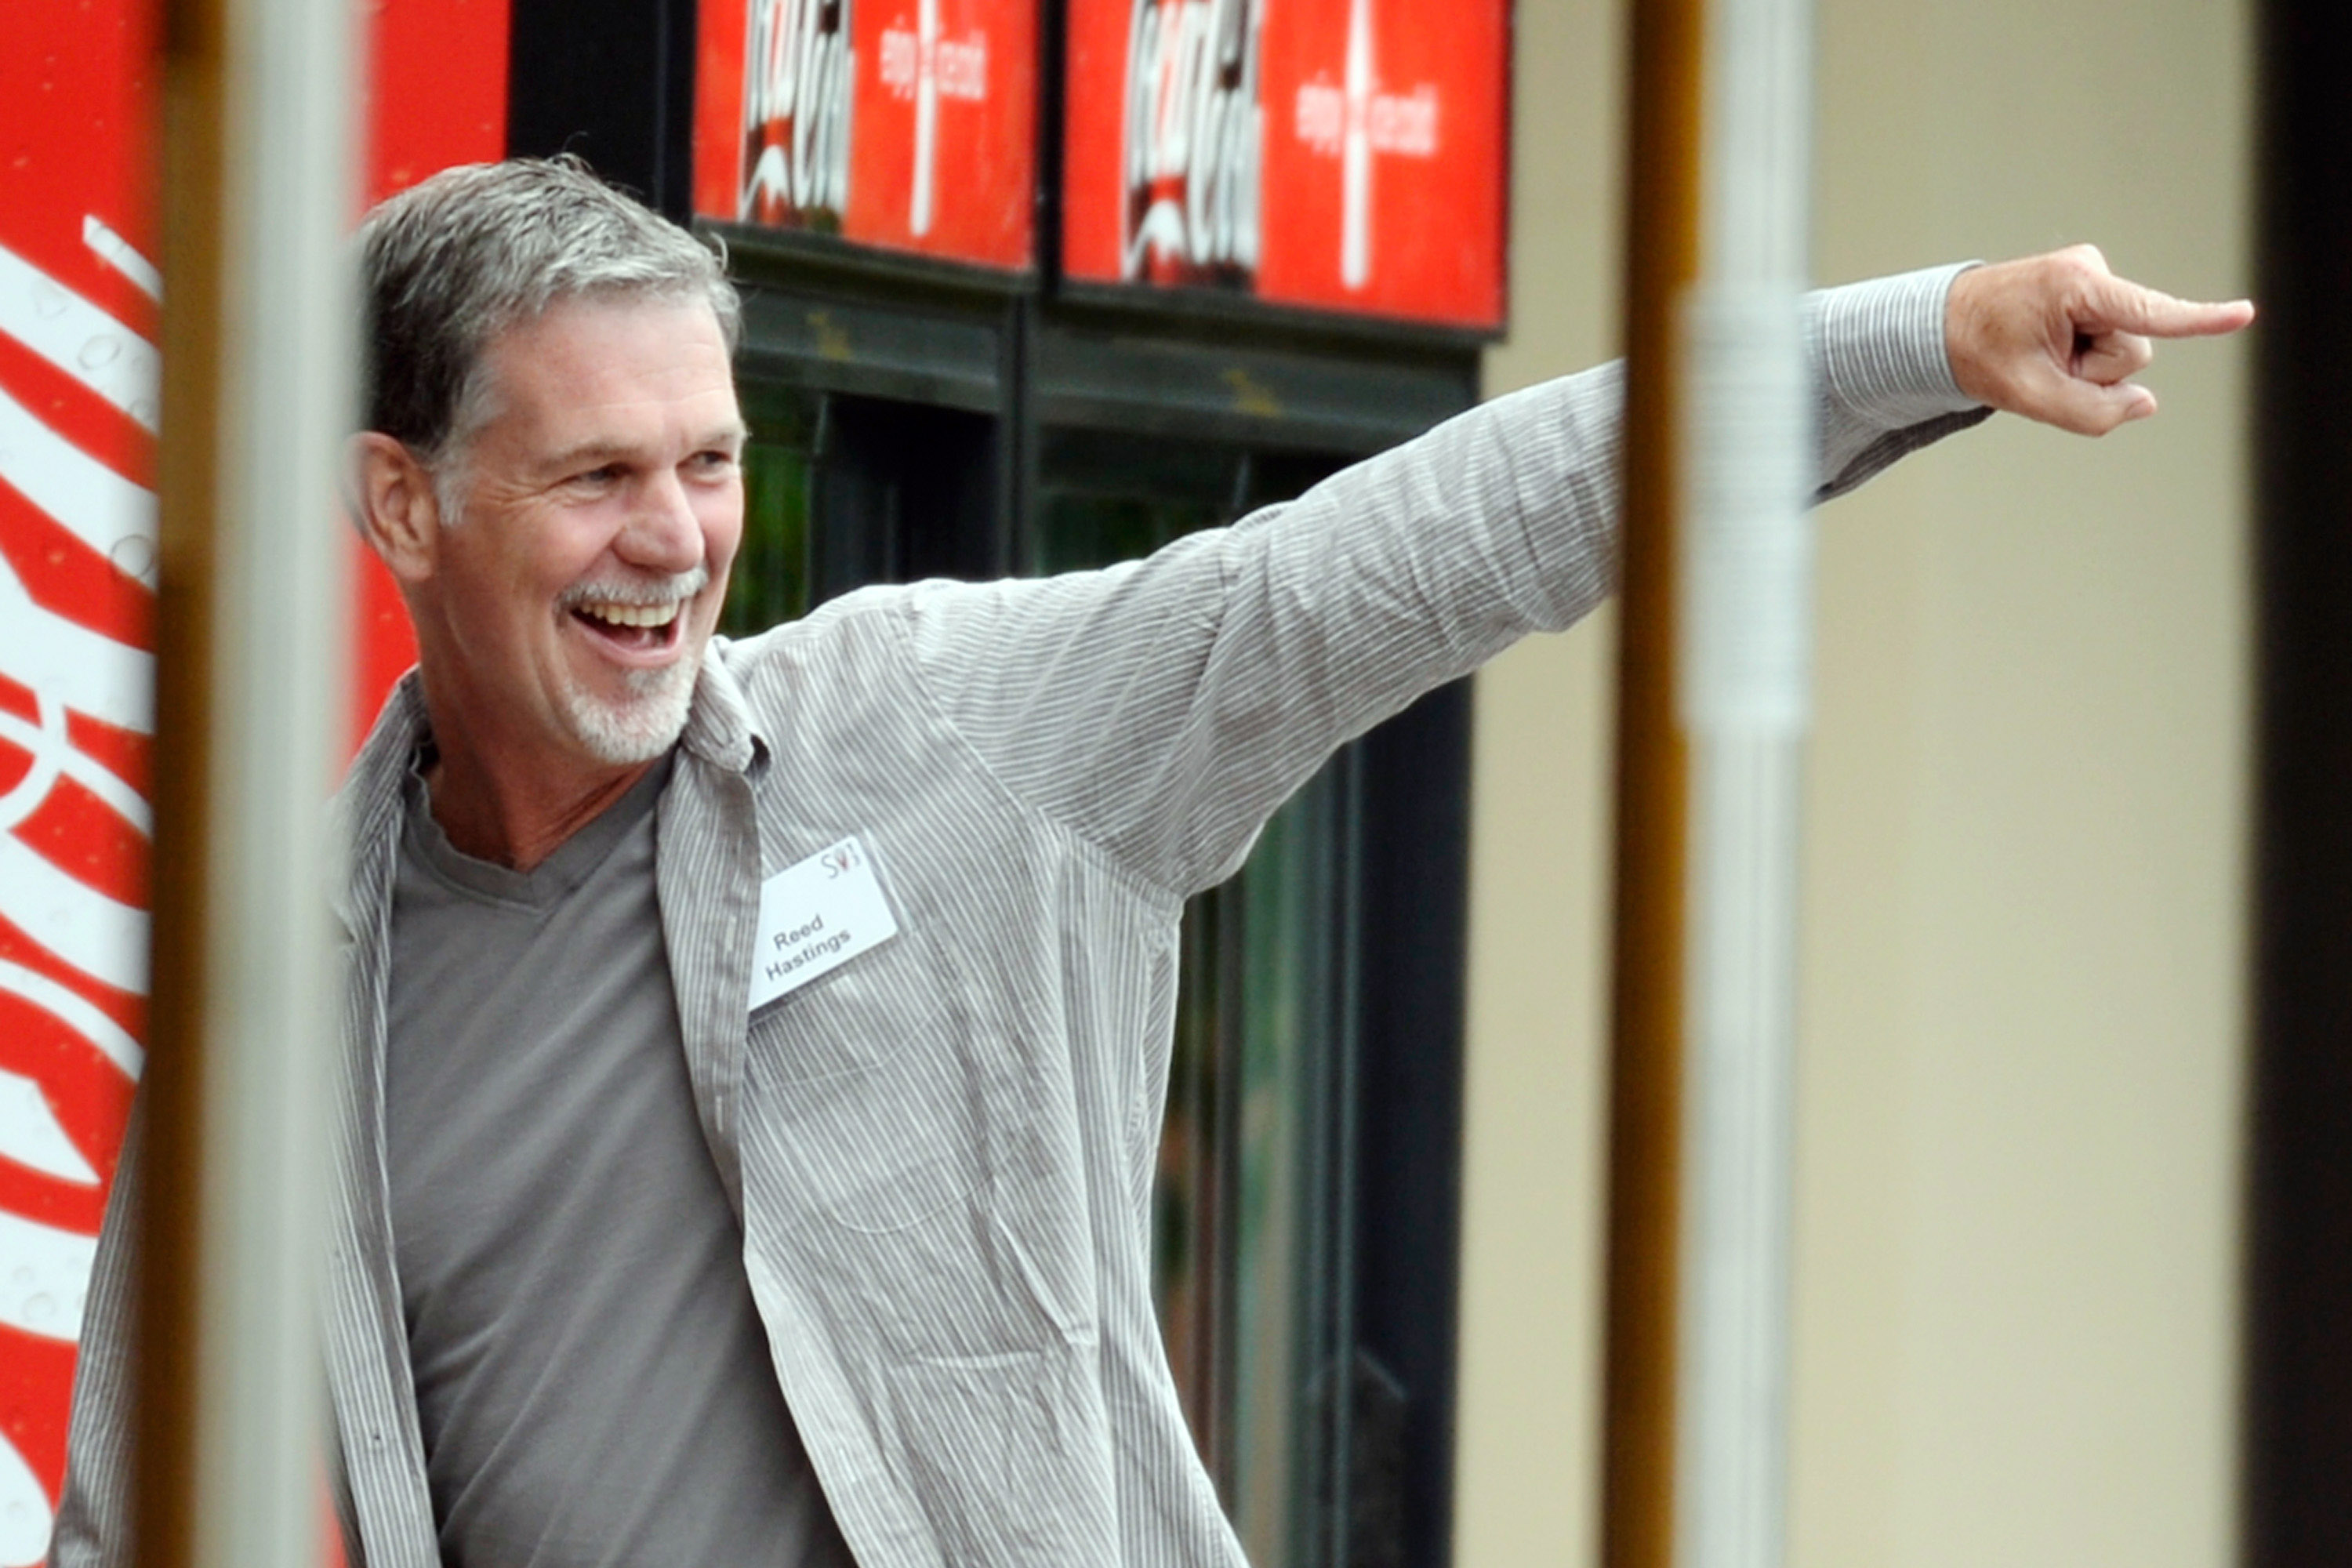 Reed Hastings smiling and pointing.